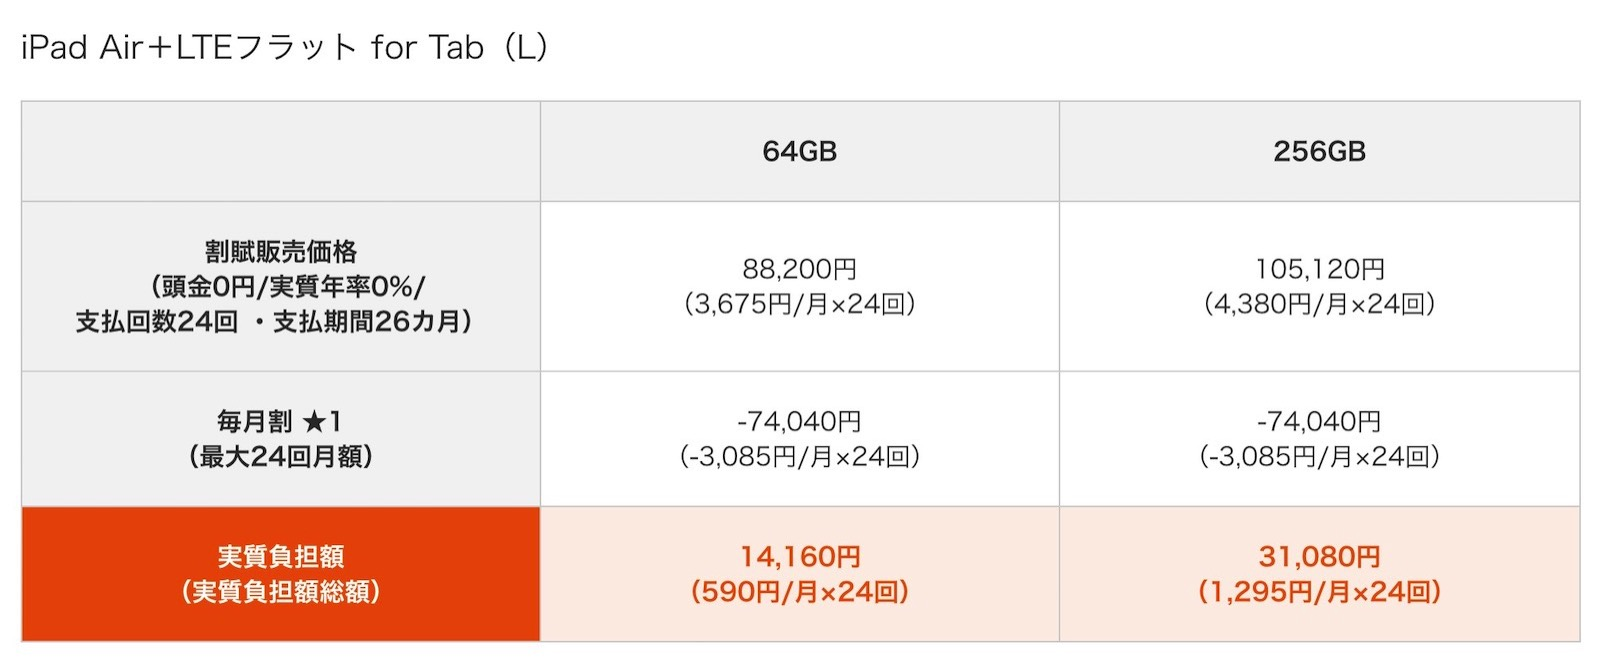 Au ipad air pricing